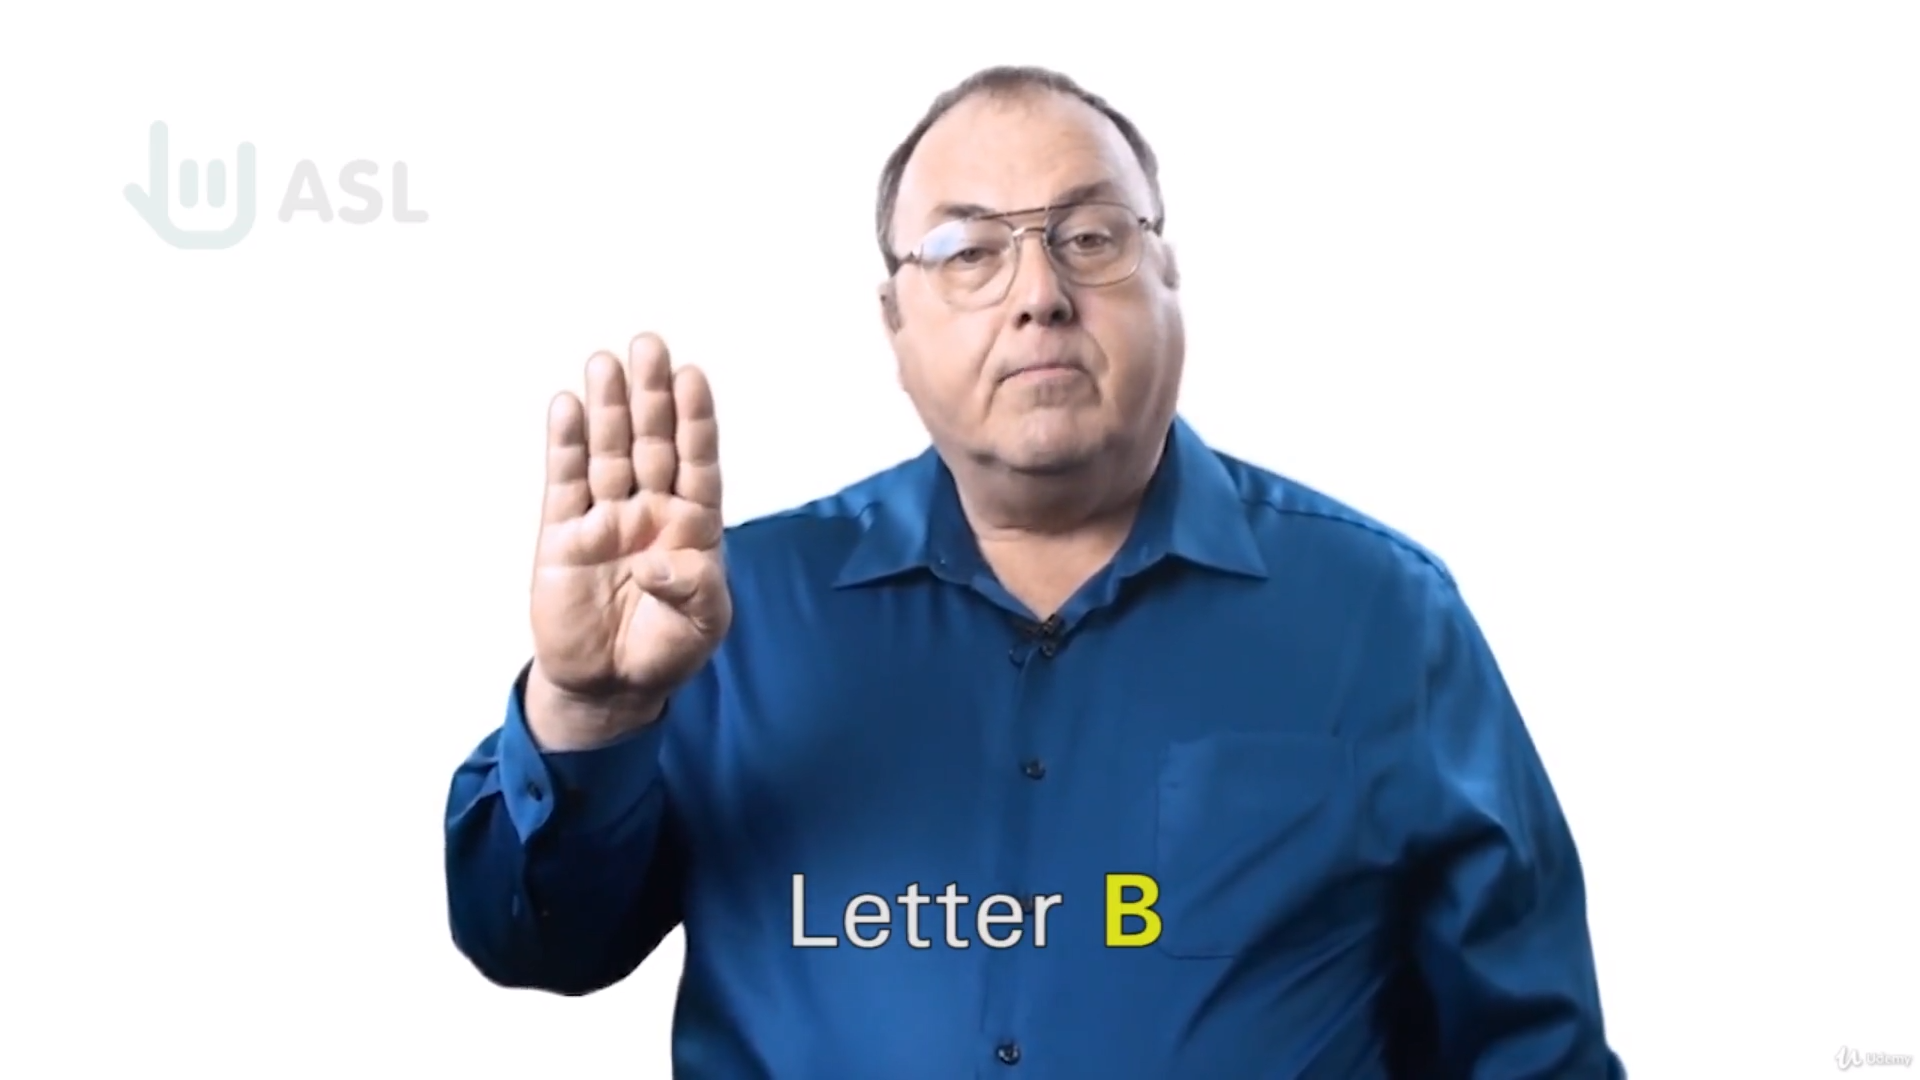 A person making the letter B with their hand using American Sign Language